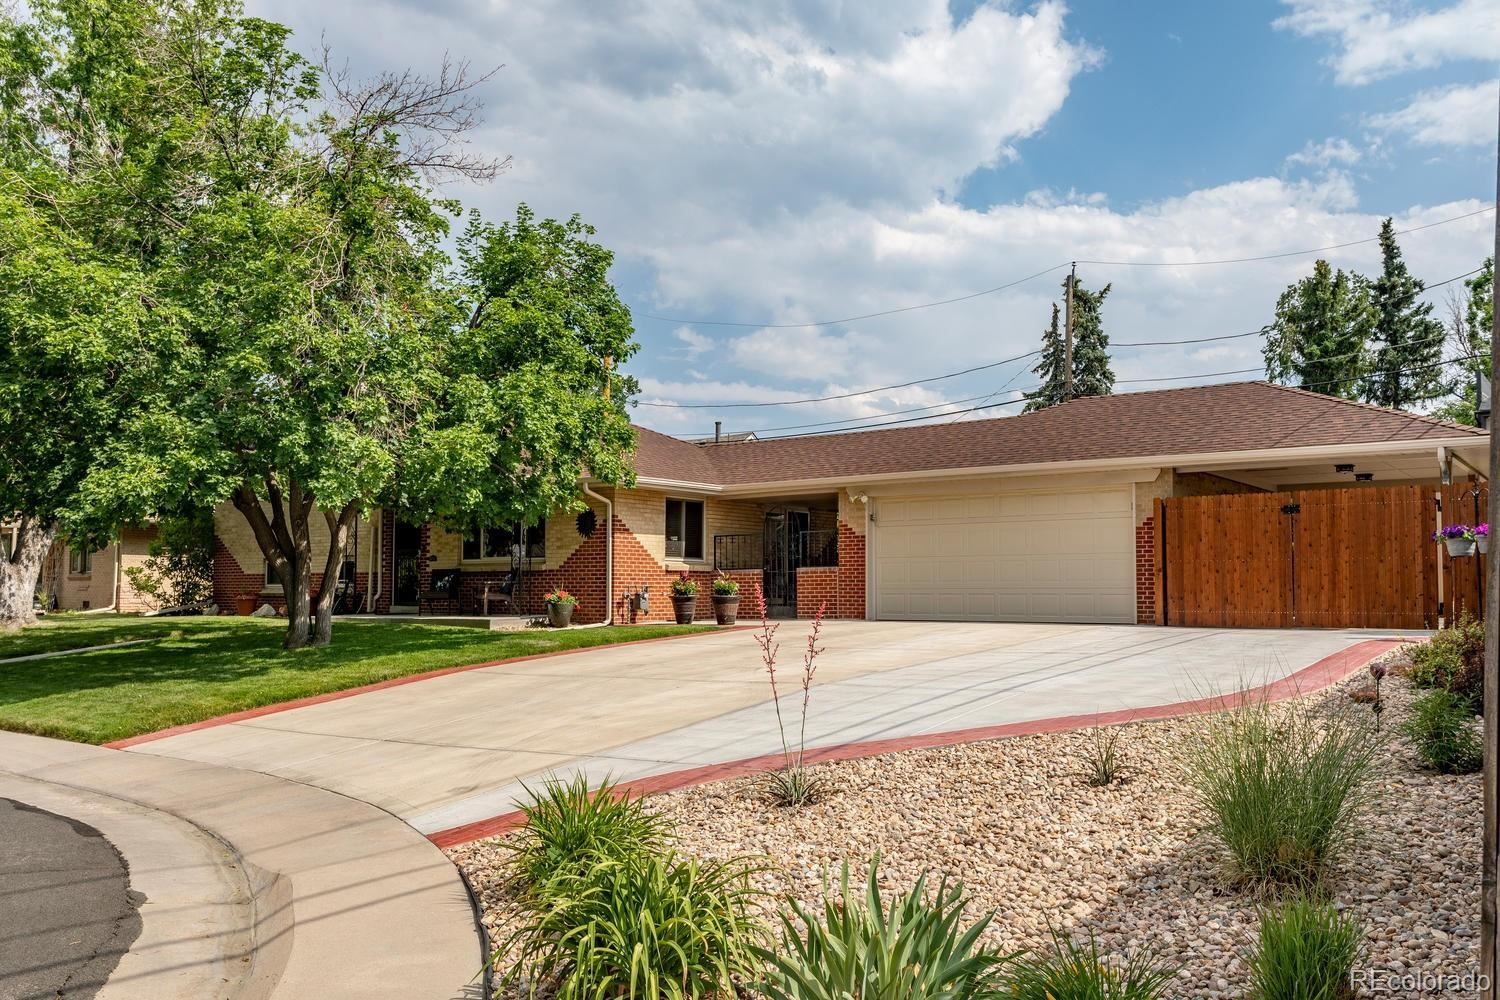 6190 W 39th Avenue, Wheat Ridge, CO 80033 - #: 1985022